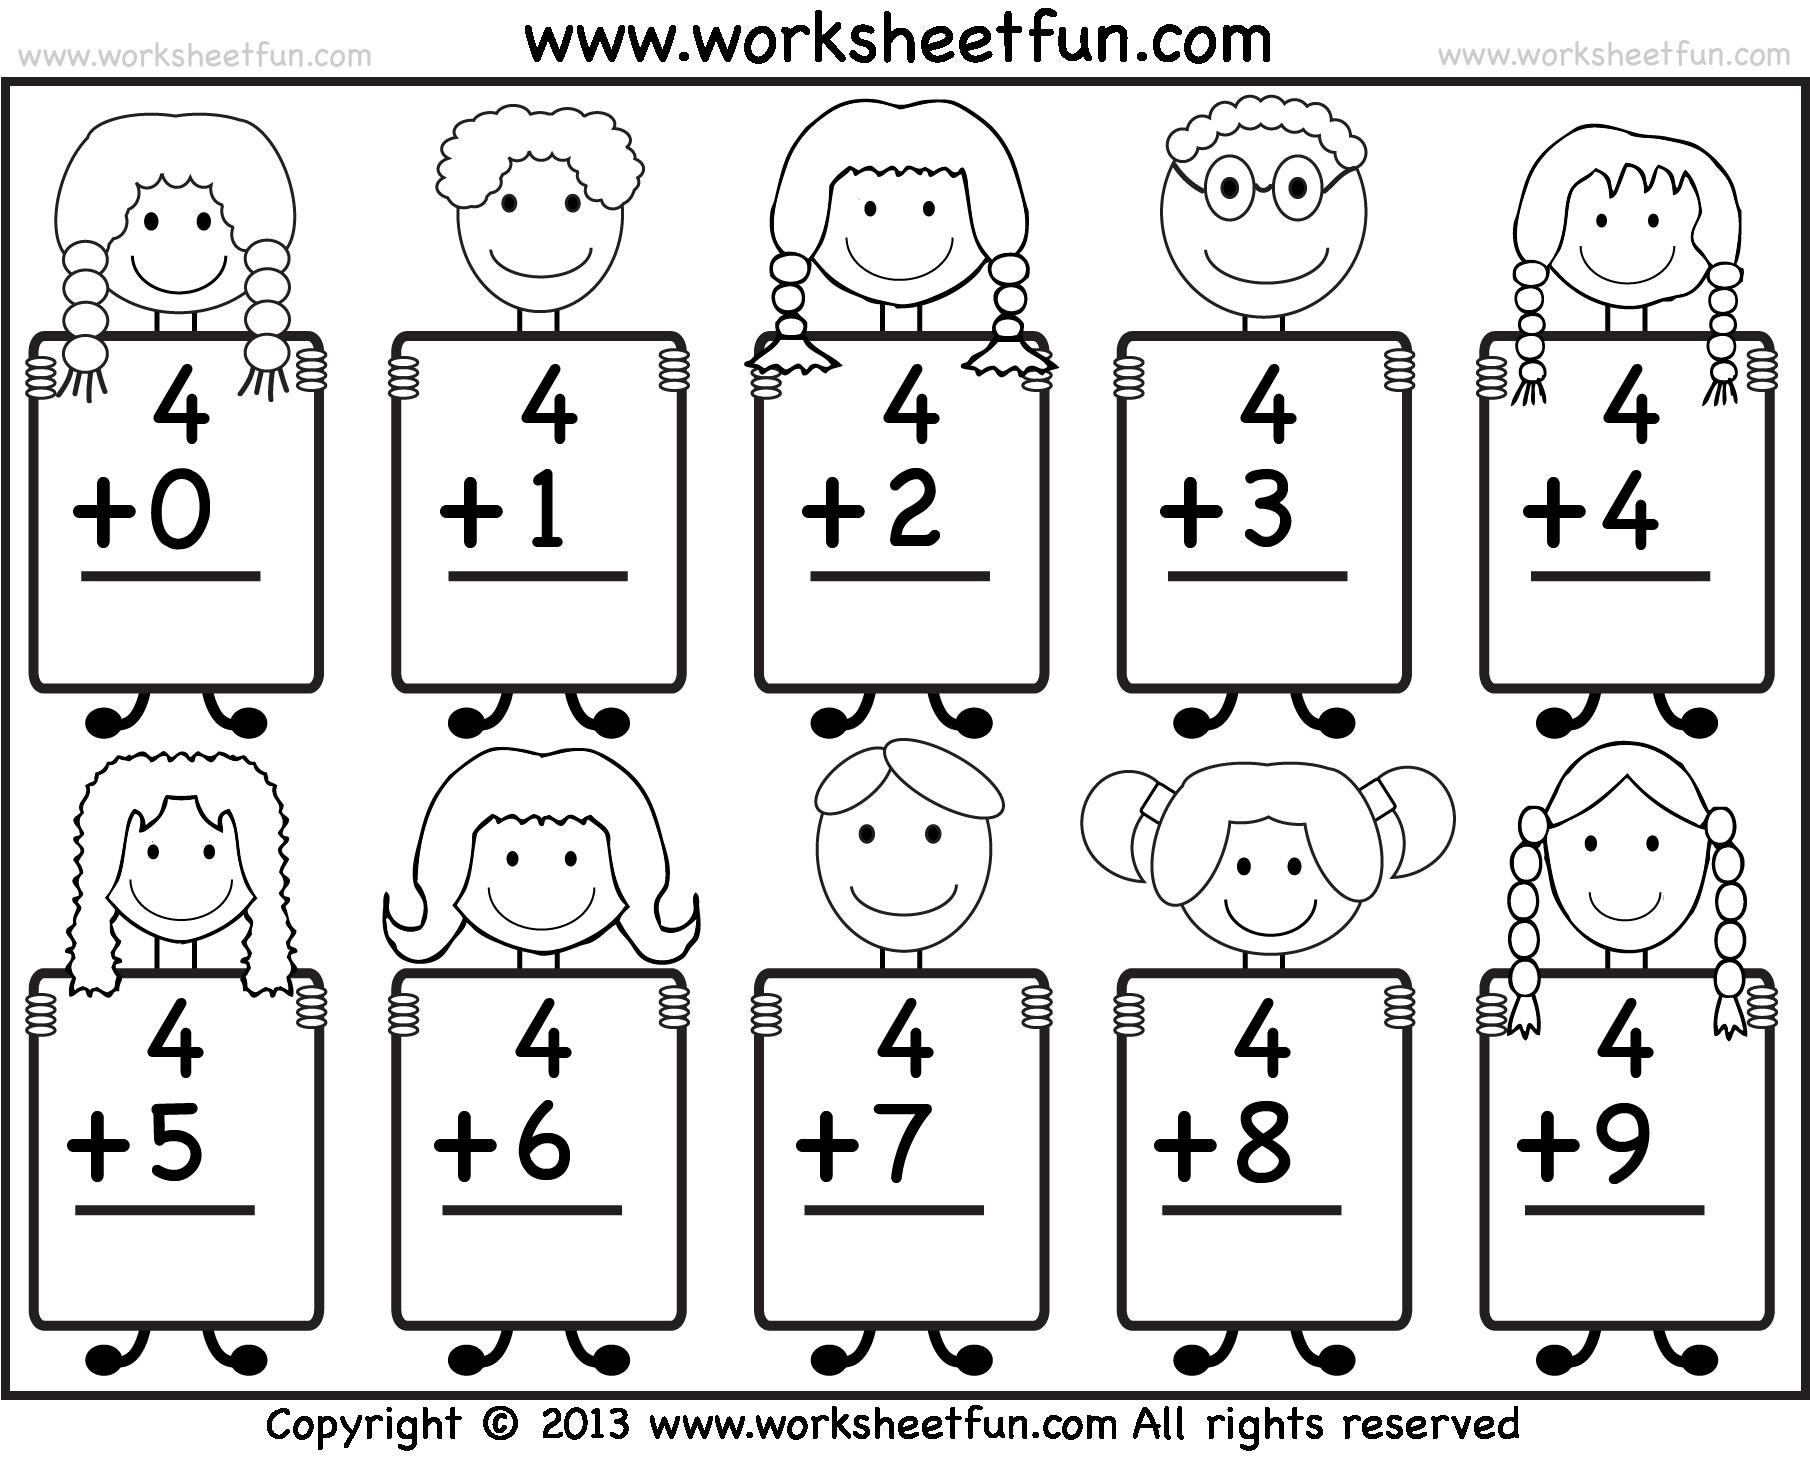 freeprintablemathworksheetsforkindergartenaddition1png – Math Kindergarten Worksheets